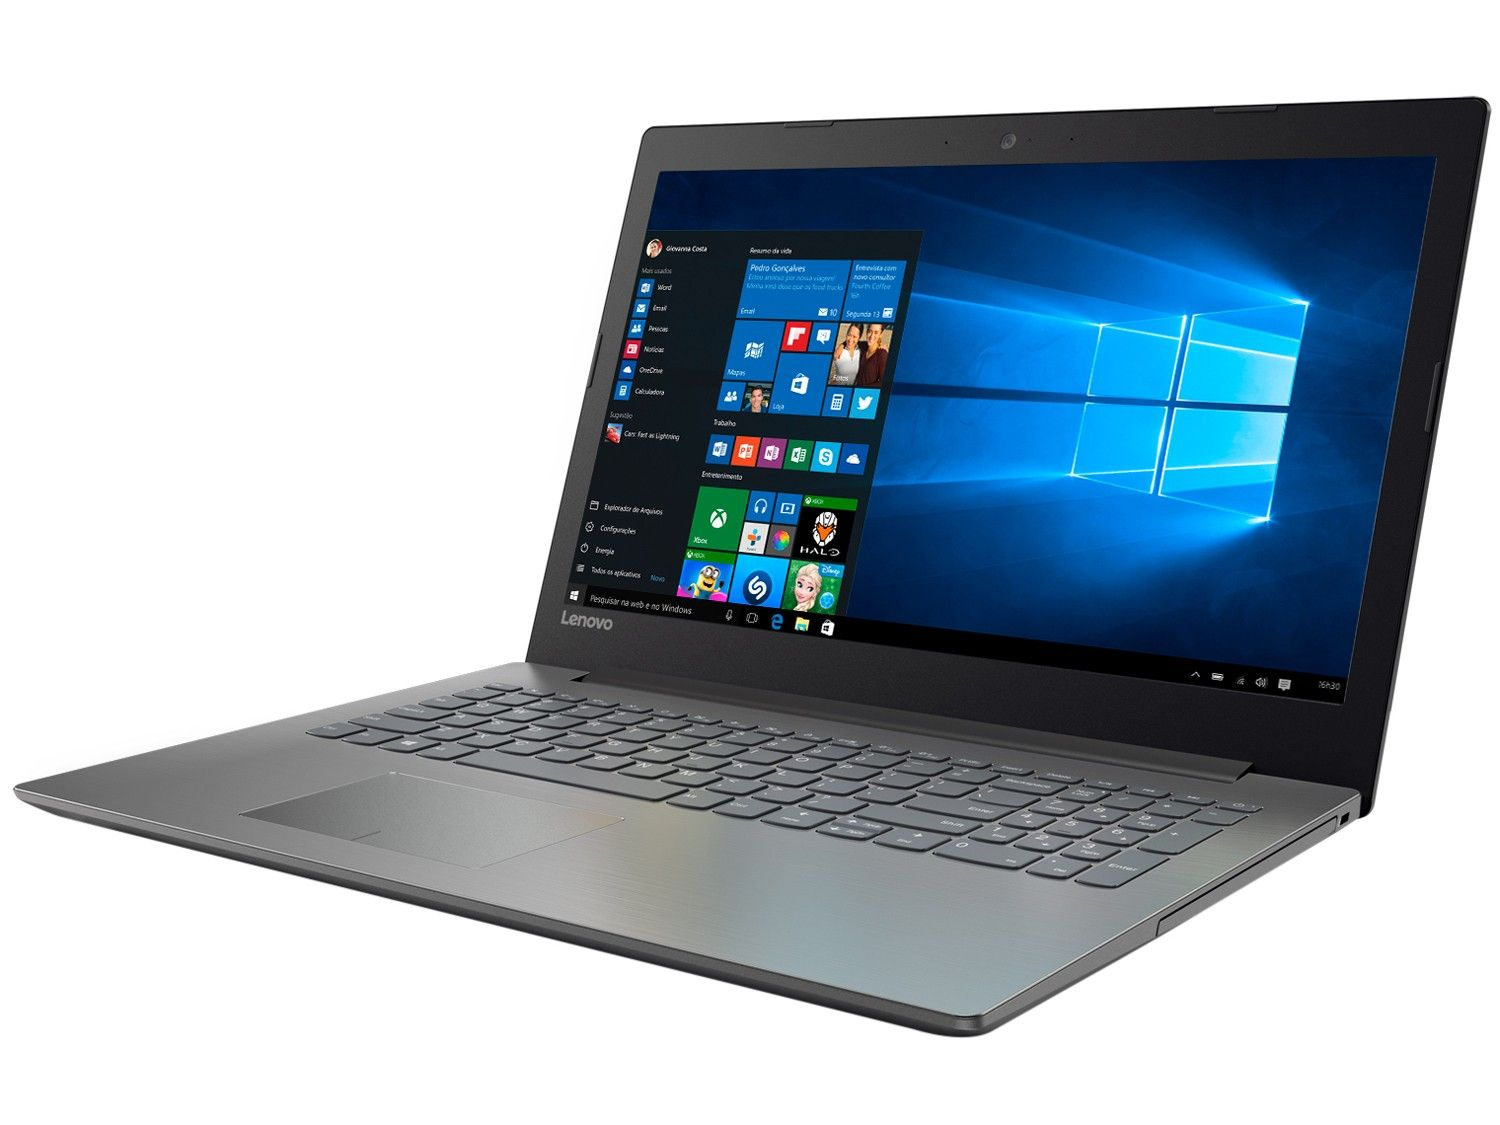 Notebook Lenovo Tela 15.6 Ideapad Intel N3350 4GB Dual Core 500GB W10 - Preto  81A30001BR